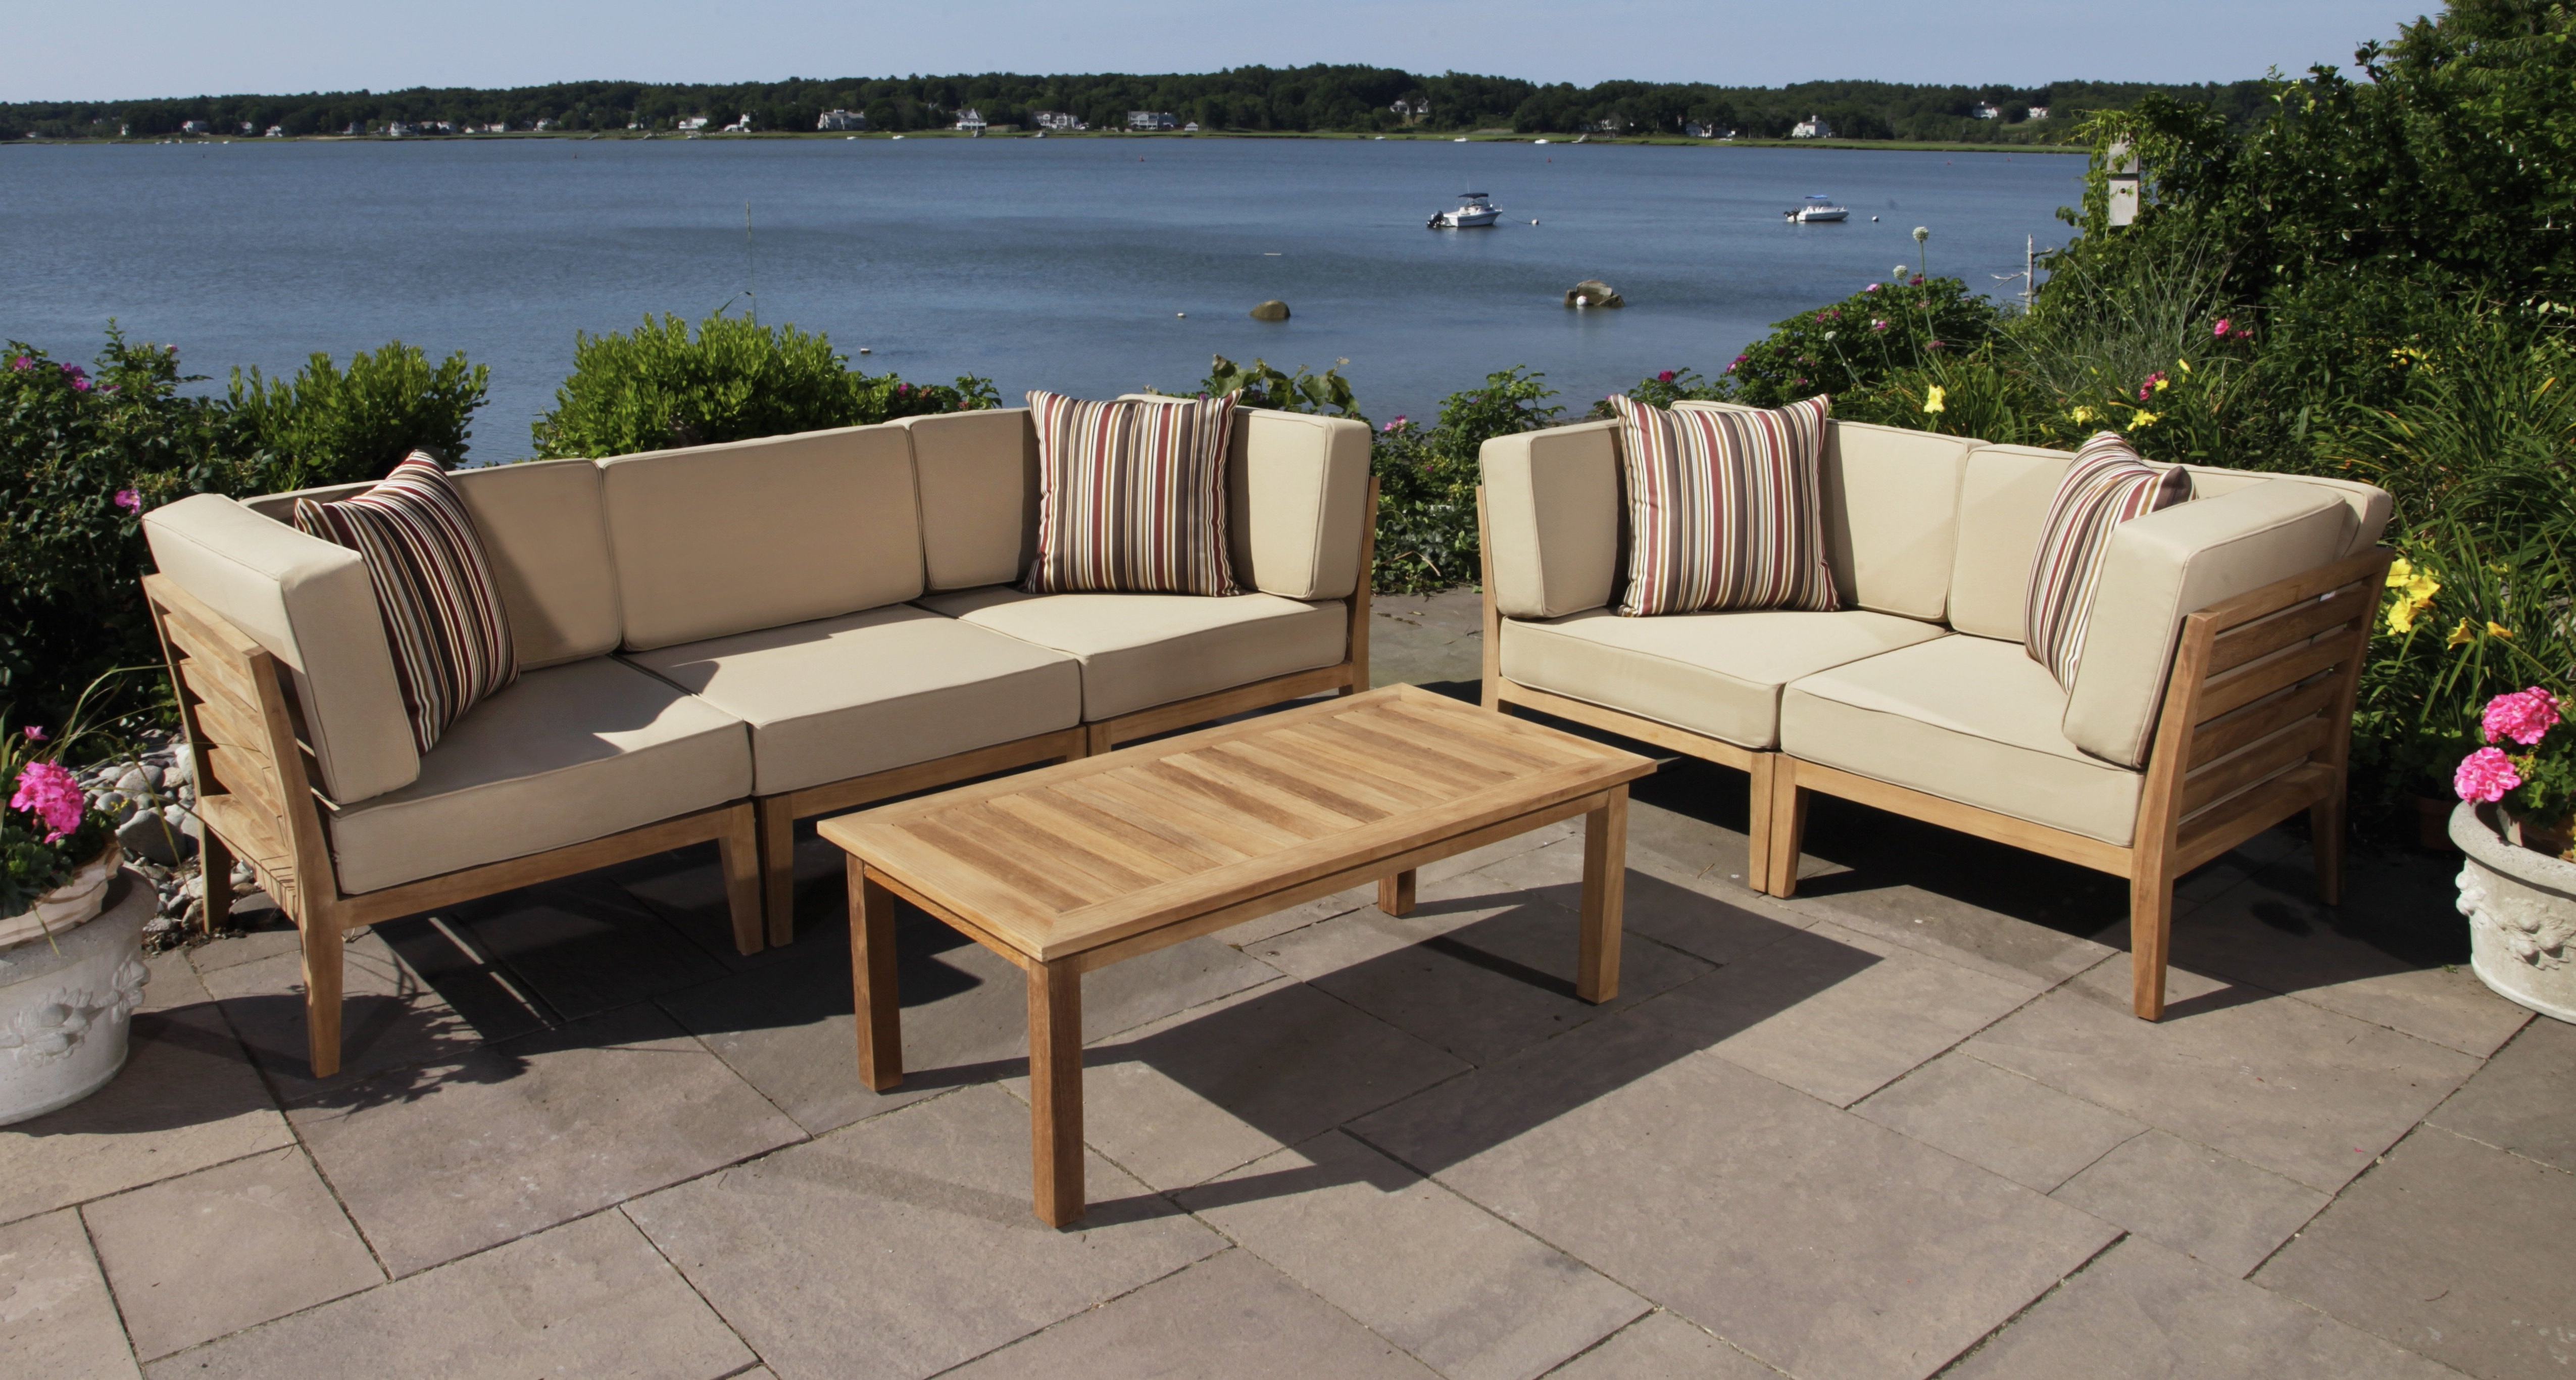 Well Known Antonia Teak Patio Sectionals With Cushions Throughout Bali 6 Piece Teak Sectional Set With Cushions (Gallery 22 of 25)